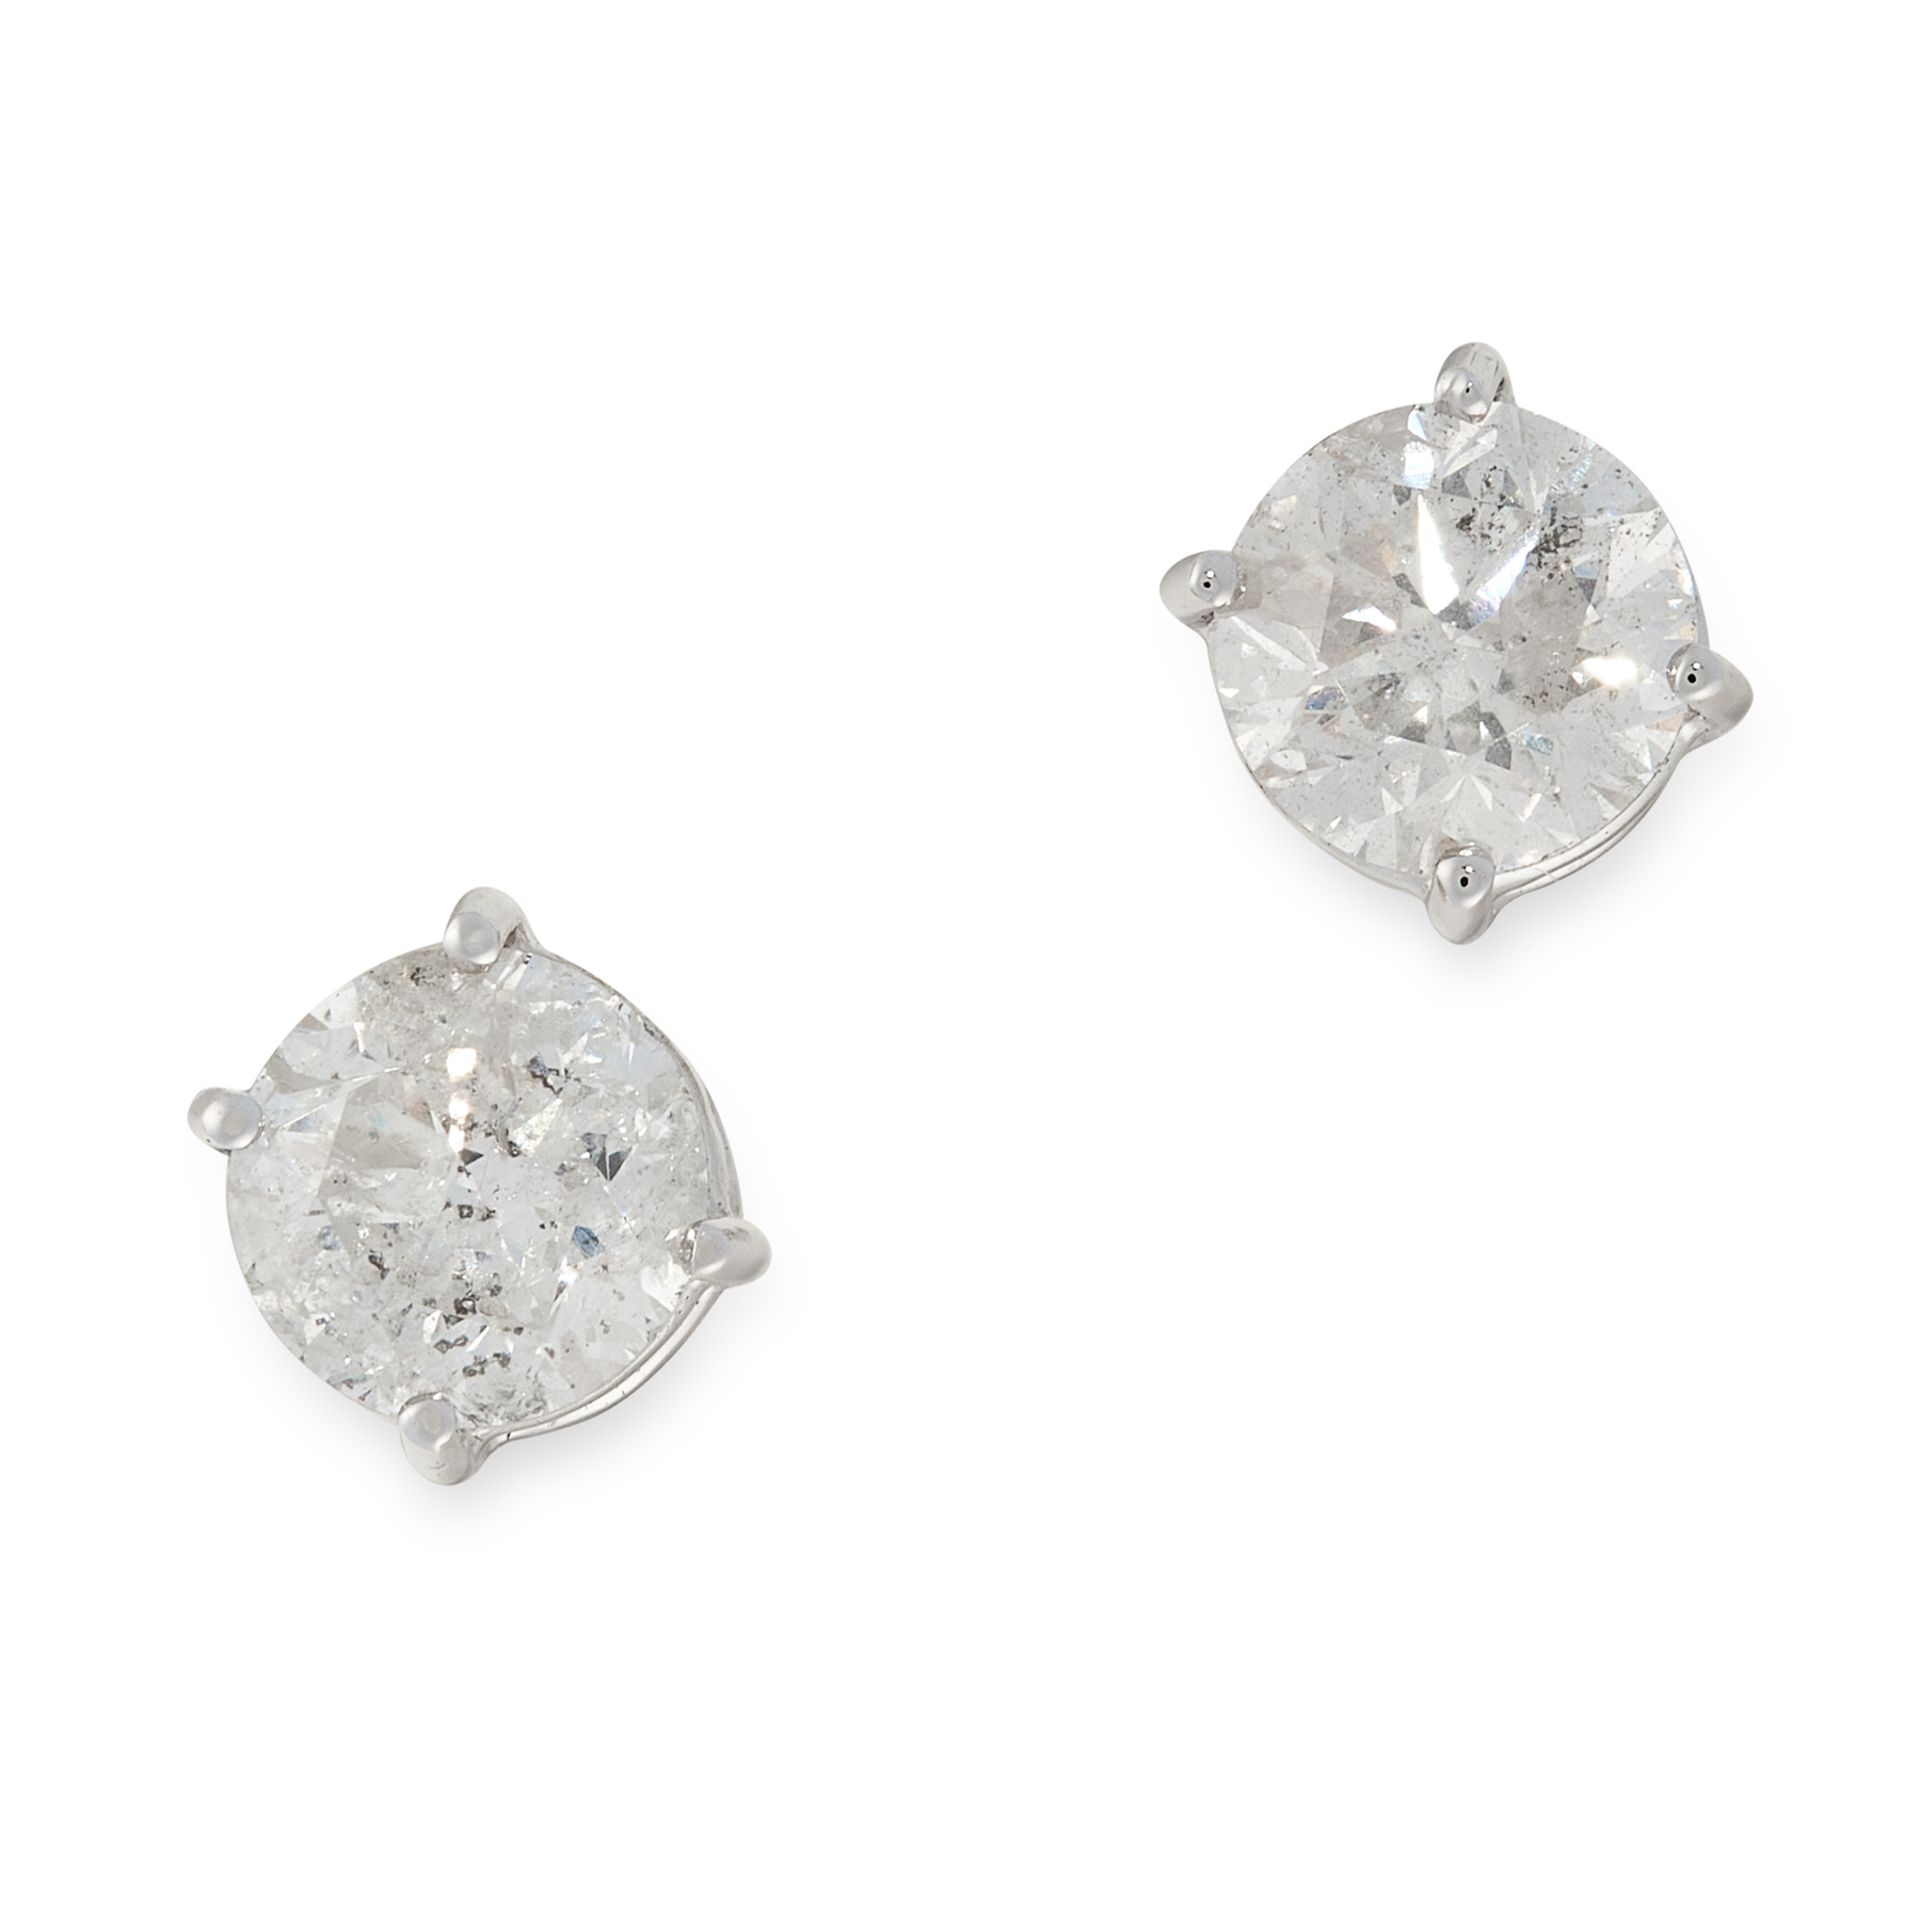 A PAIR OF DIAMOND STUD EARRINGS in 18ct white gold, each set with a round cut diamond, both